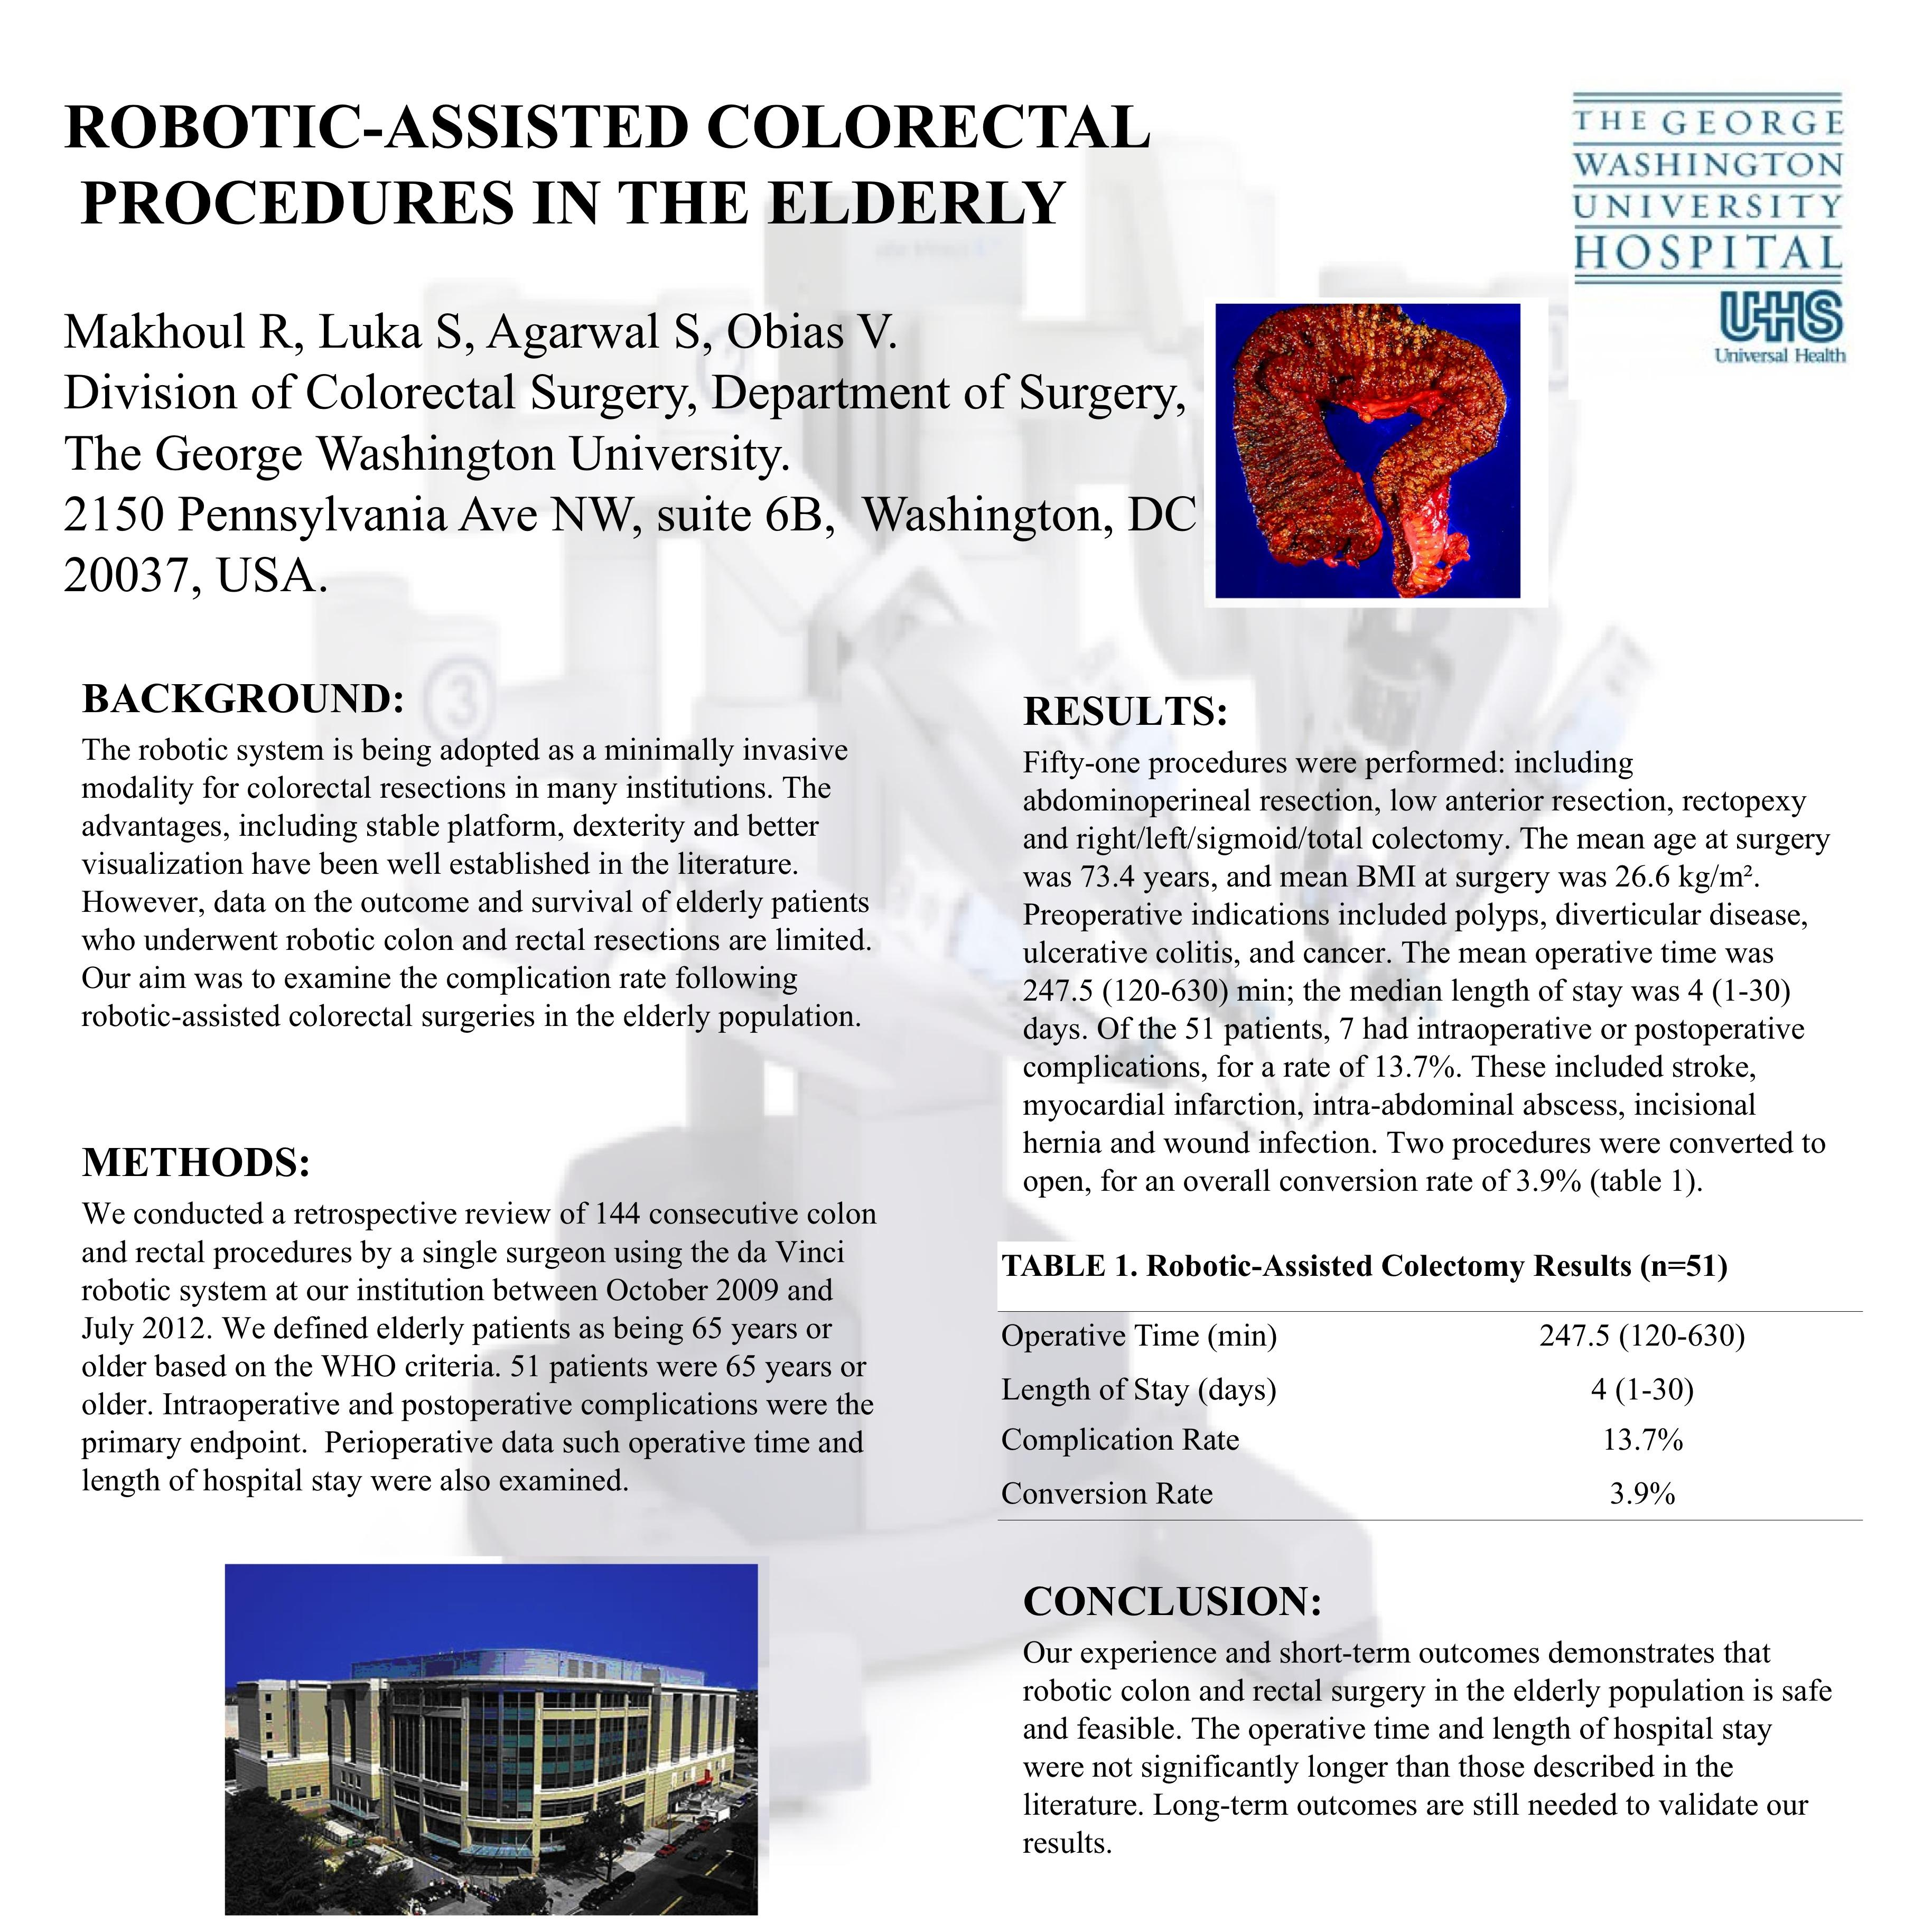 Robotic-Assisted Colorectal Procedures in the Elderly